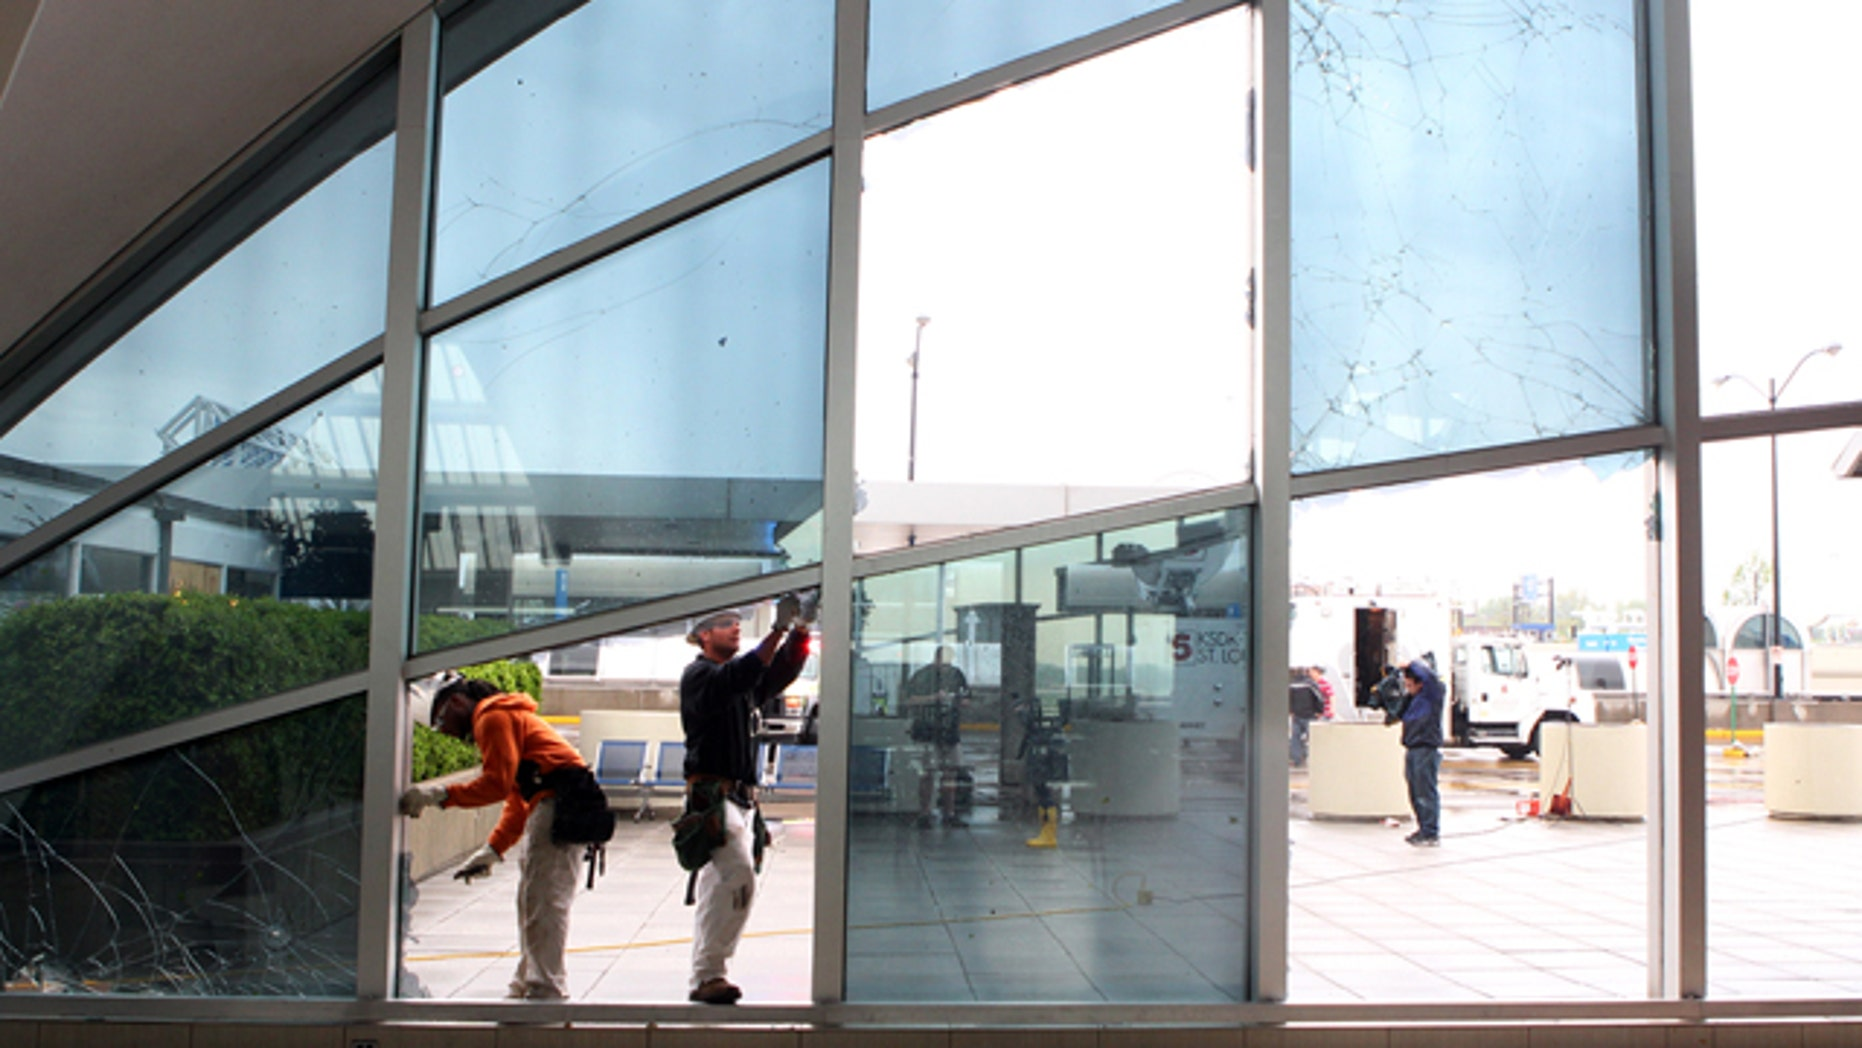 April 23: From left to right, Shaun Jones and Jacob Caldwell of BAM Contracting in St. Louis, work to repair damage to windows in the main terminal of St. Louis' Lambert International Airport